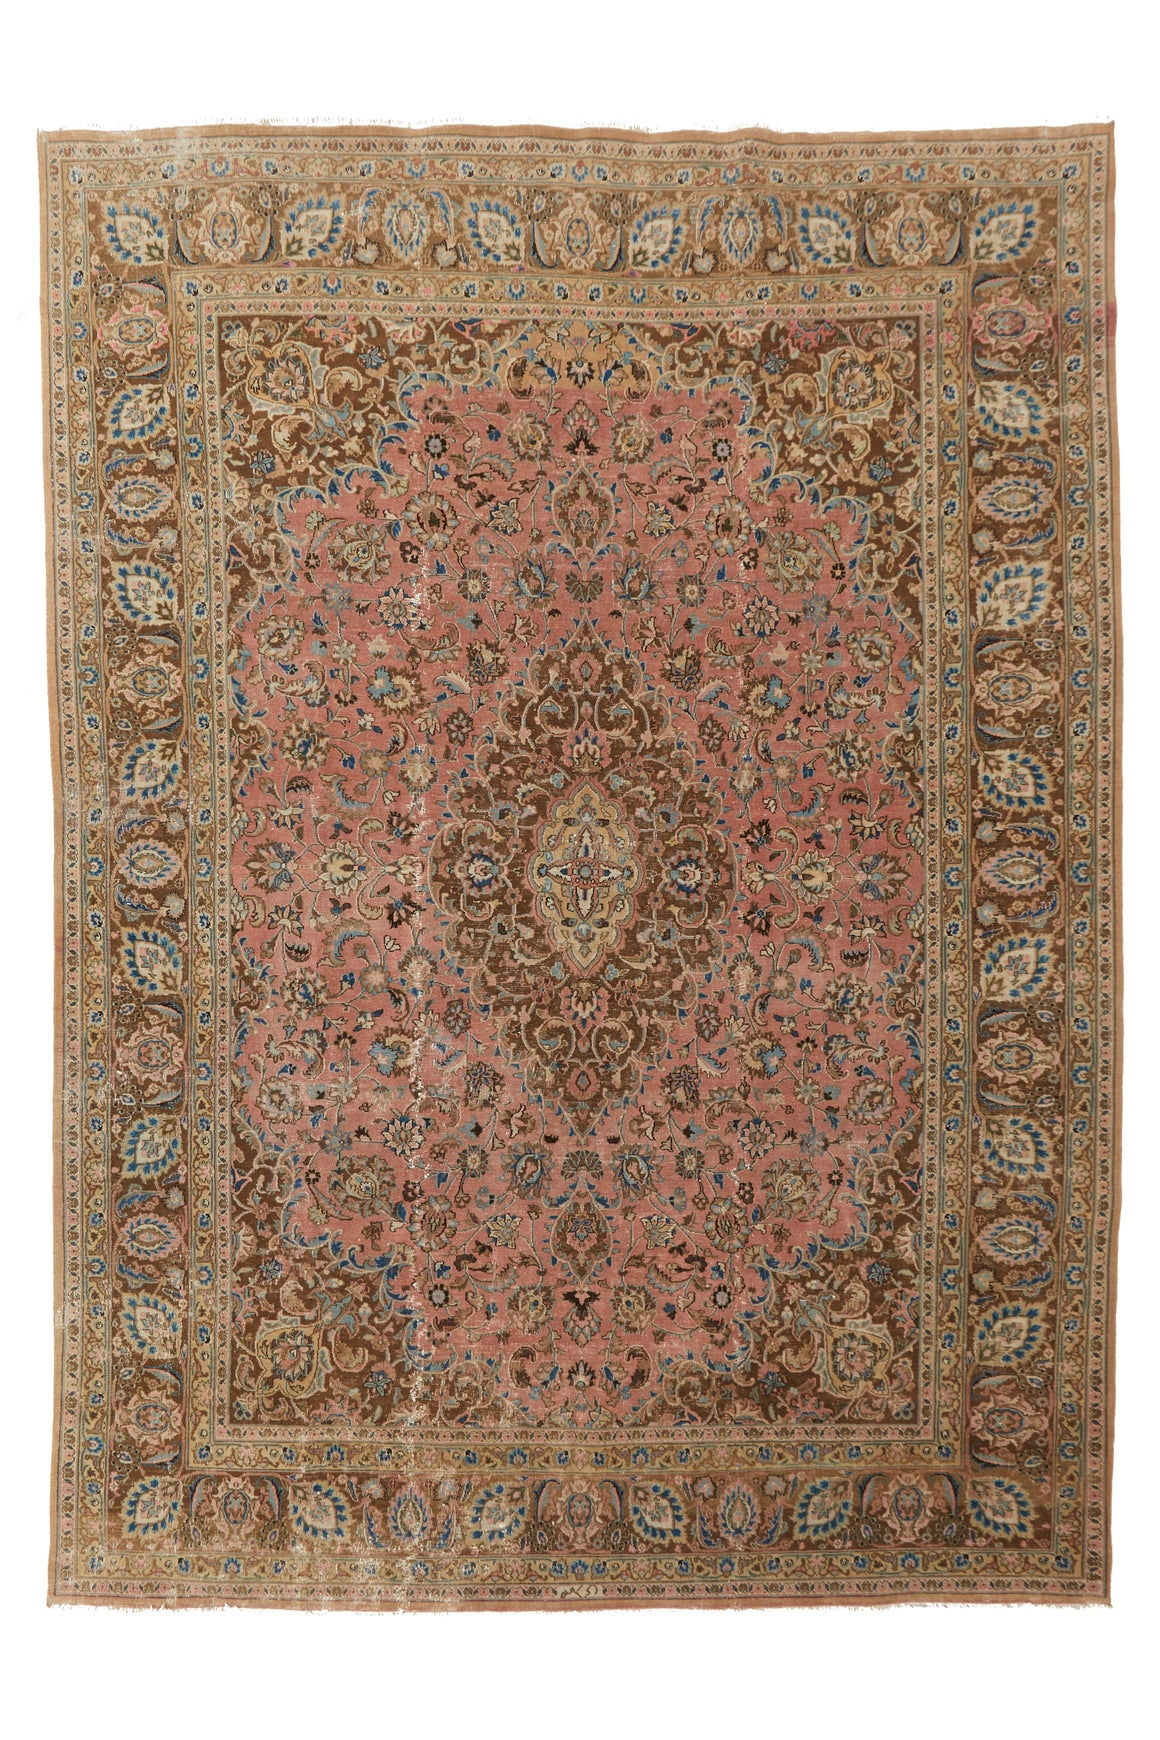 "'Viola' Palace-Sized Antique Persian Rug - 9'8"" x 13'5"" - Canary Lane - Curated Textiles"